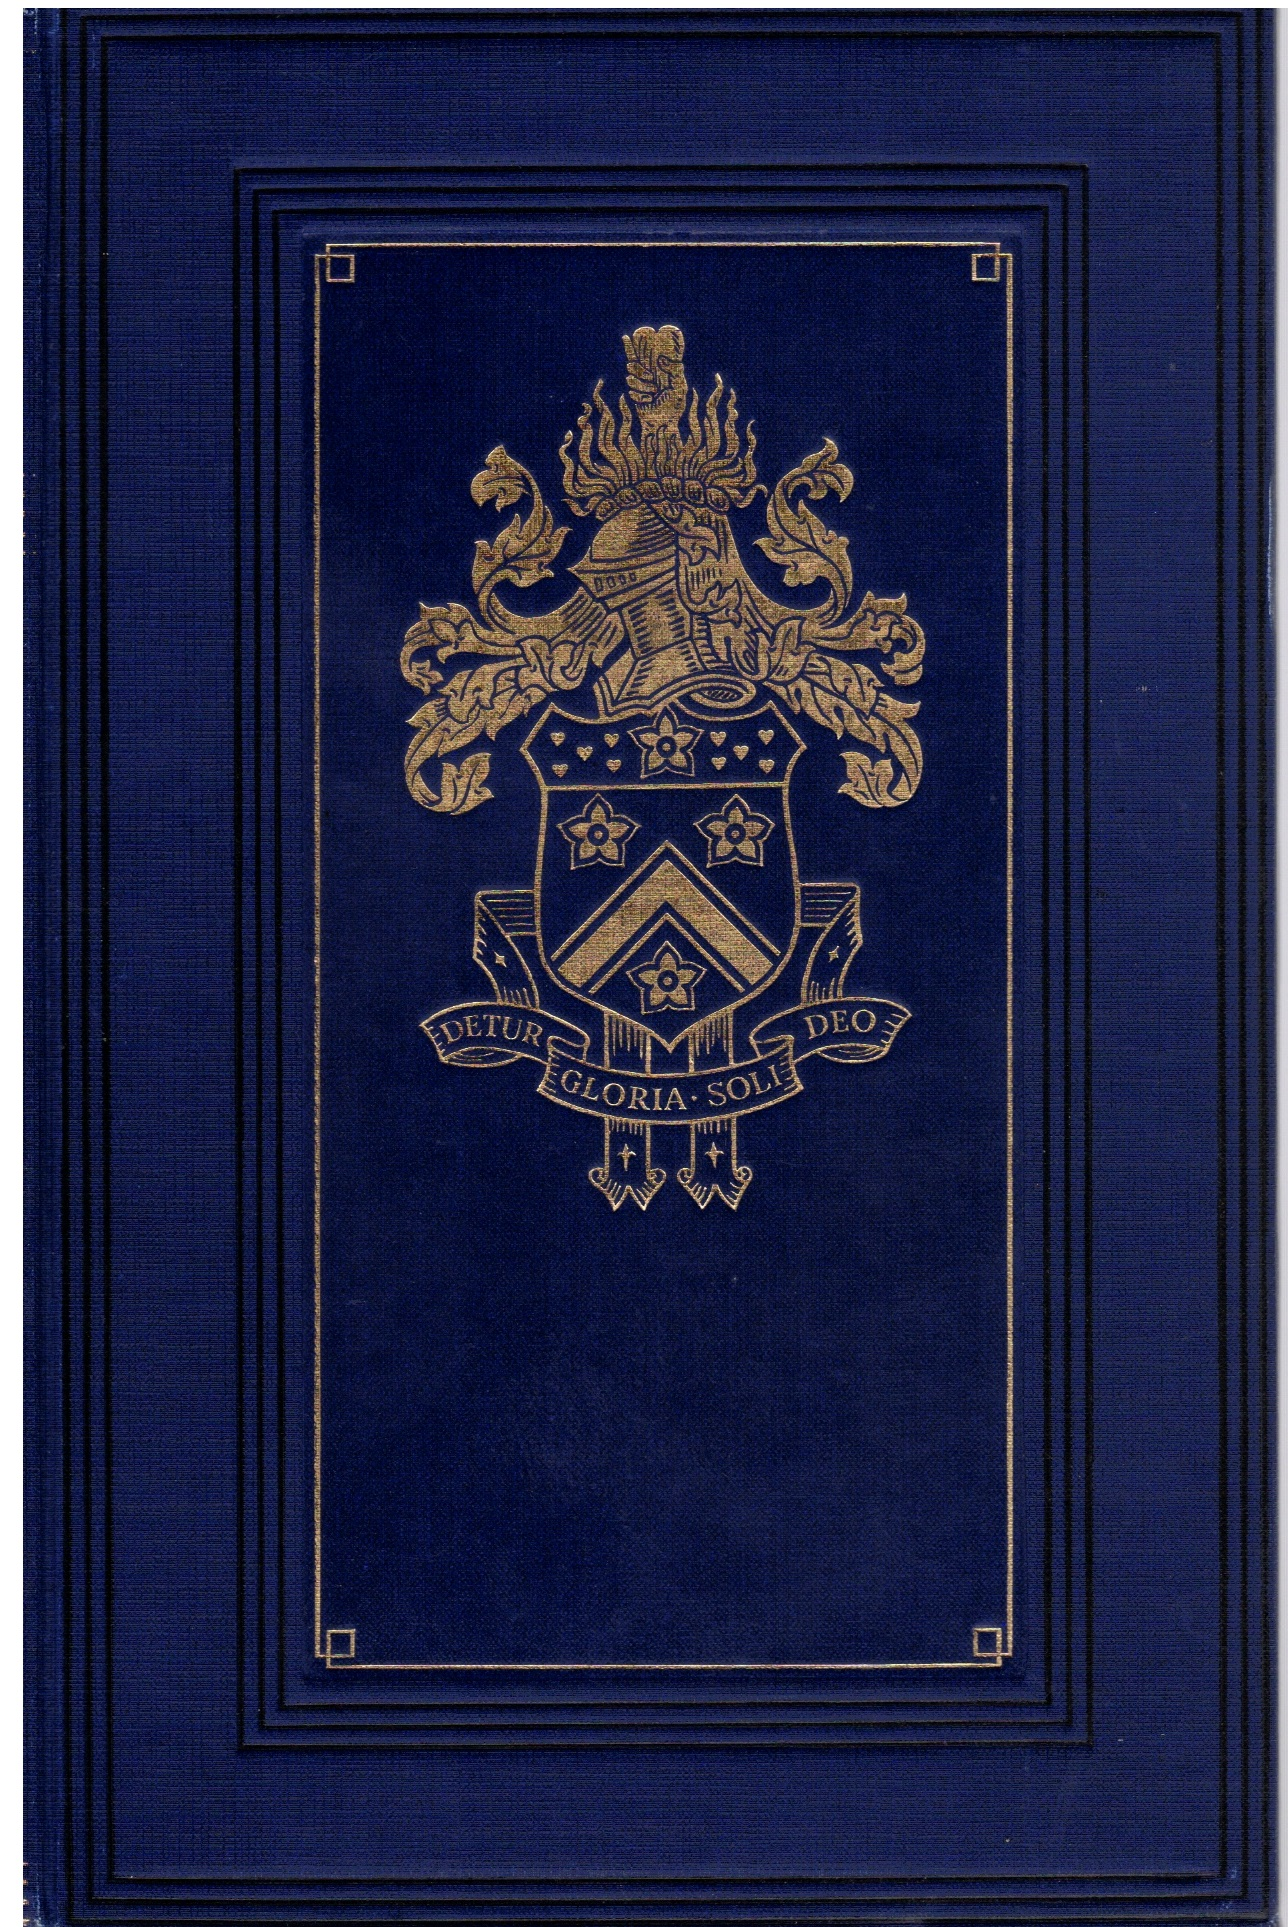 Dulwich College War record 1930-1945, 1949 (collection P. Reinders)